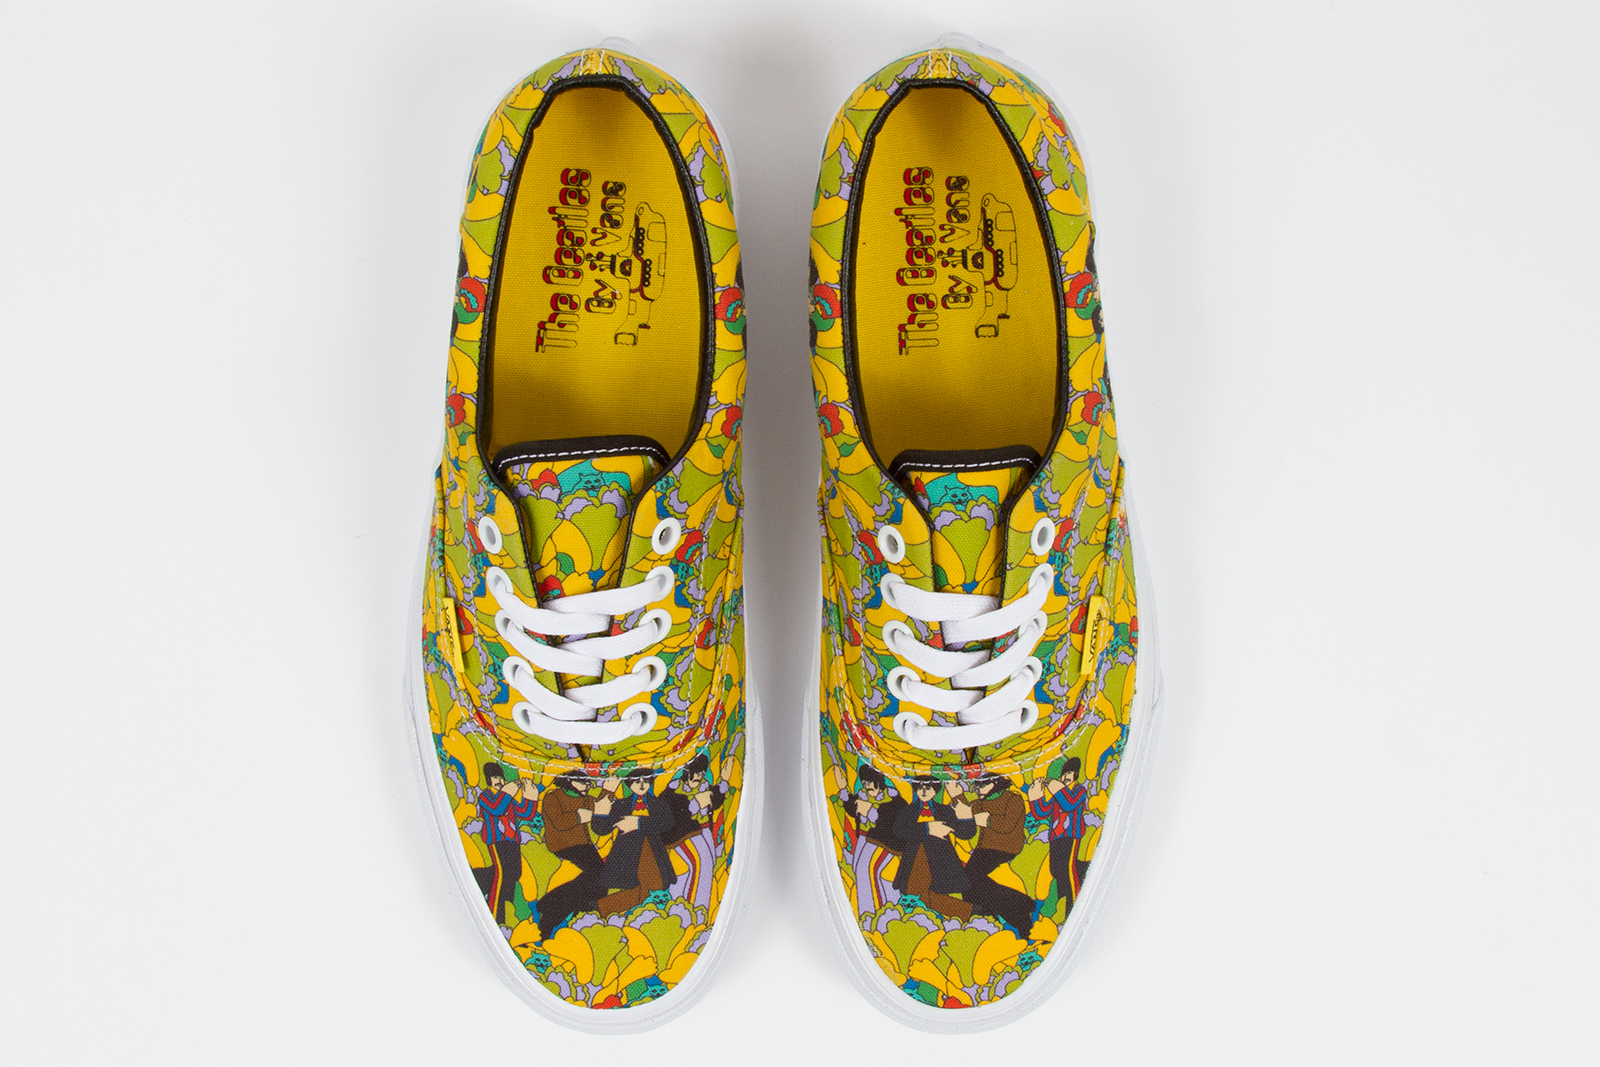 b6f63b2c0b The Beatles x Vans Yellow Submarine Capsule Collection releases March 1